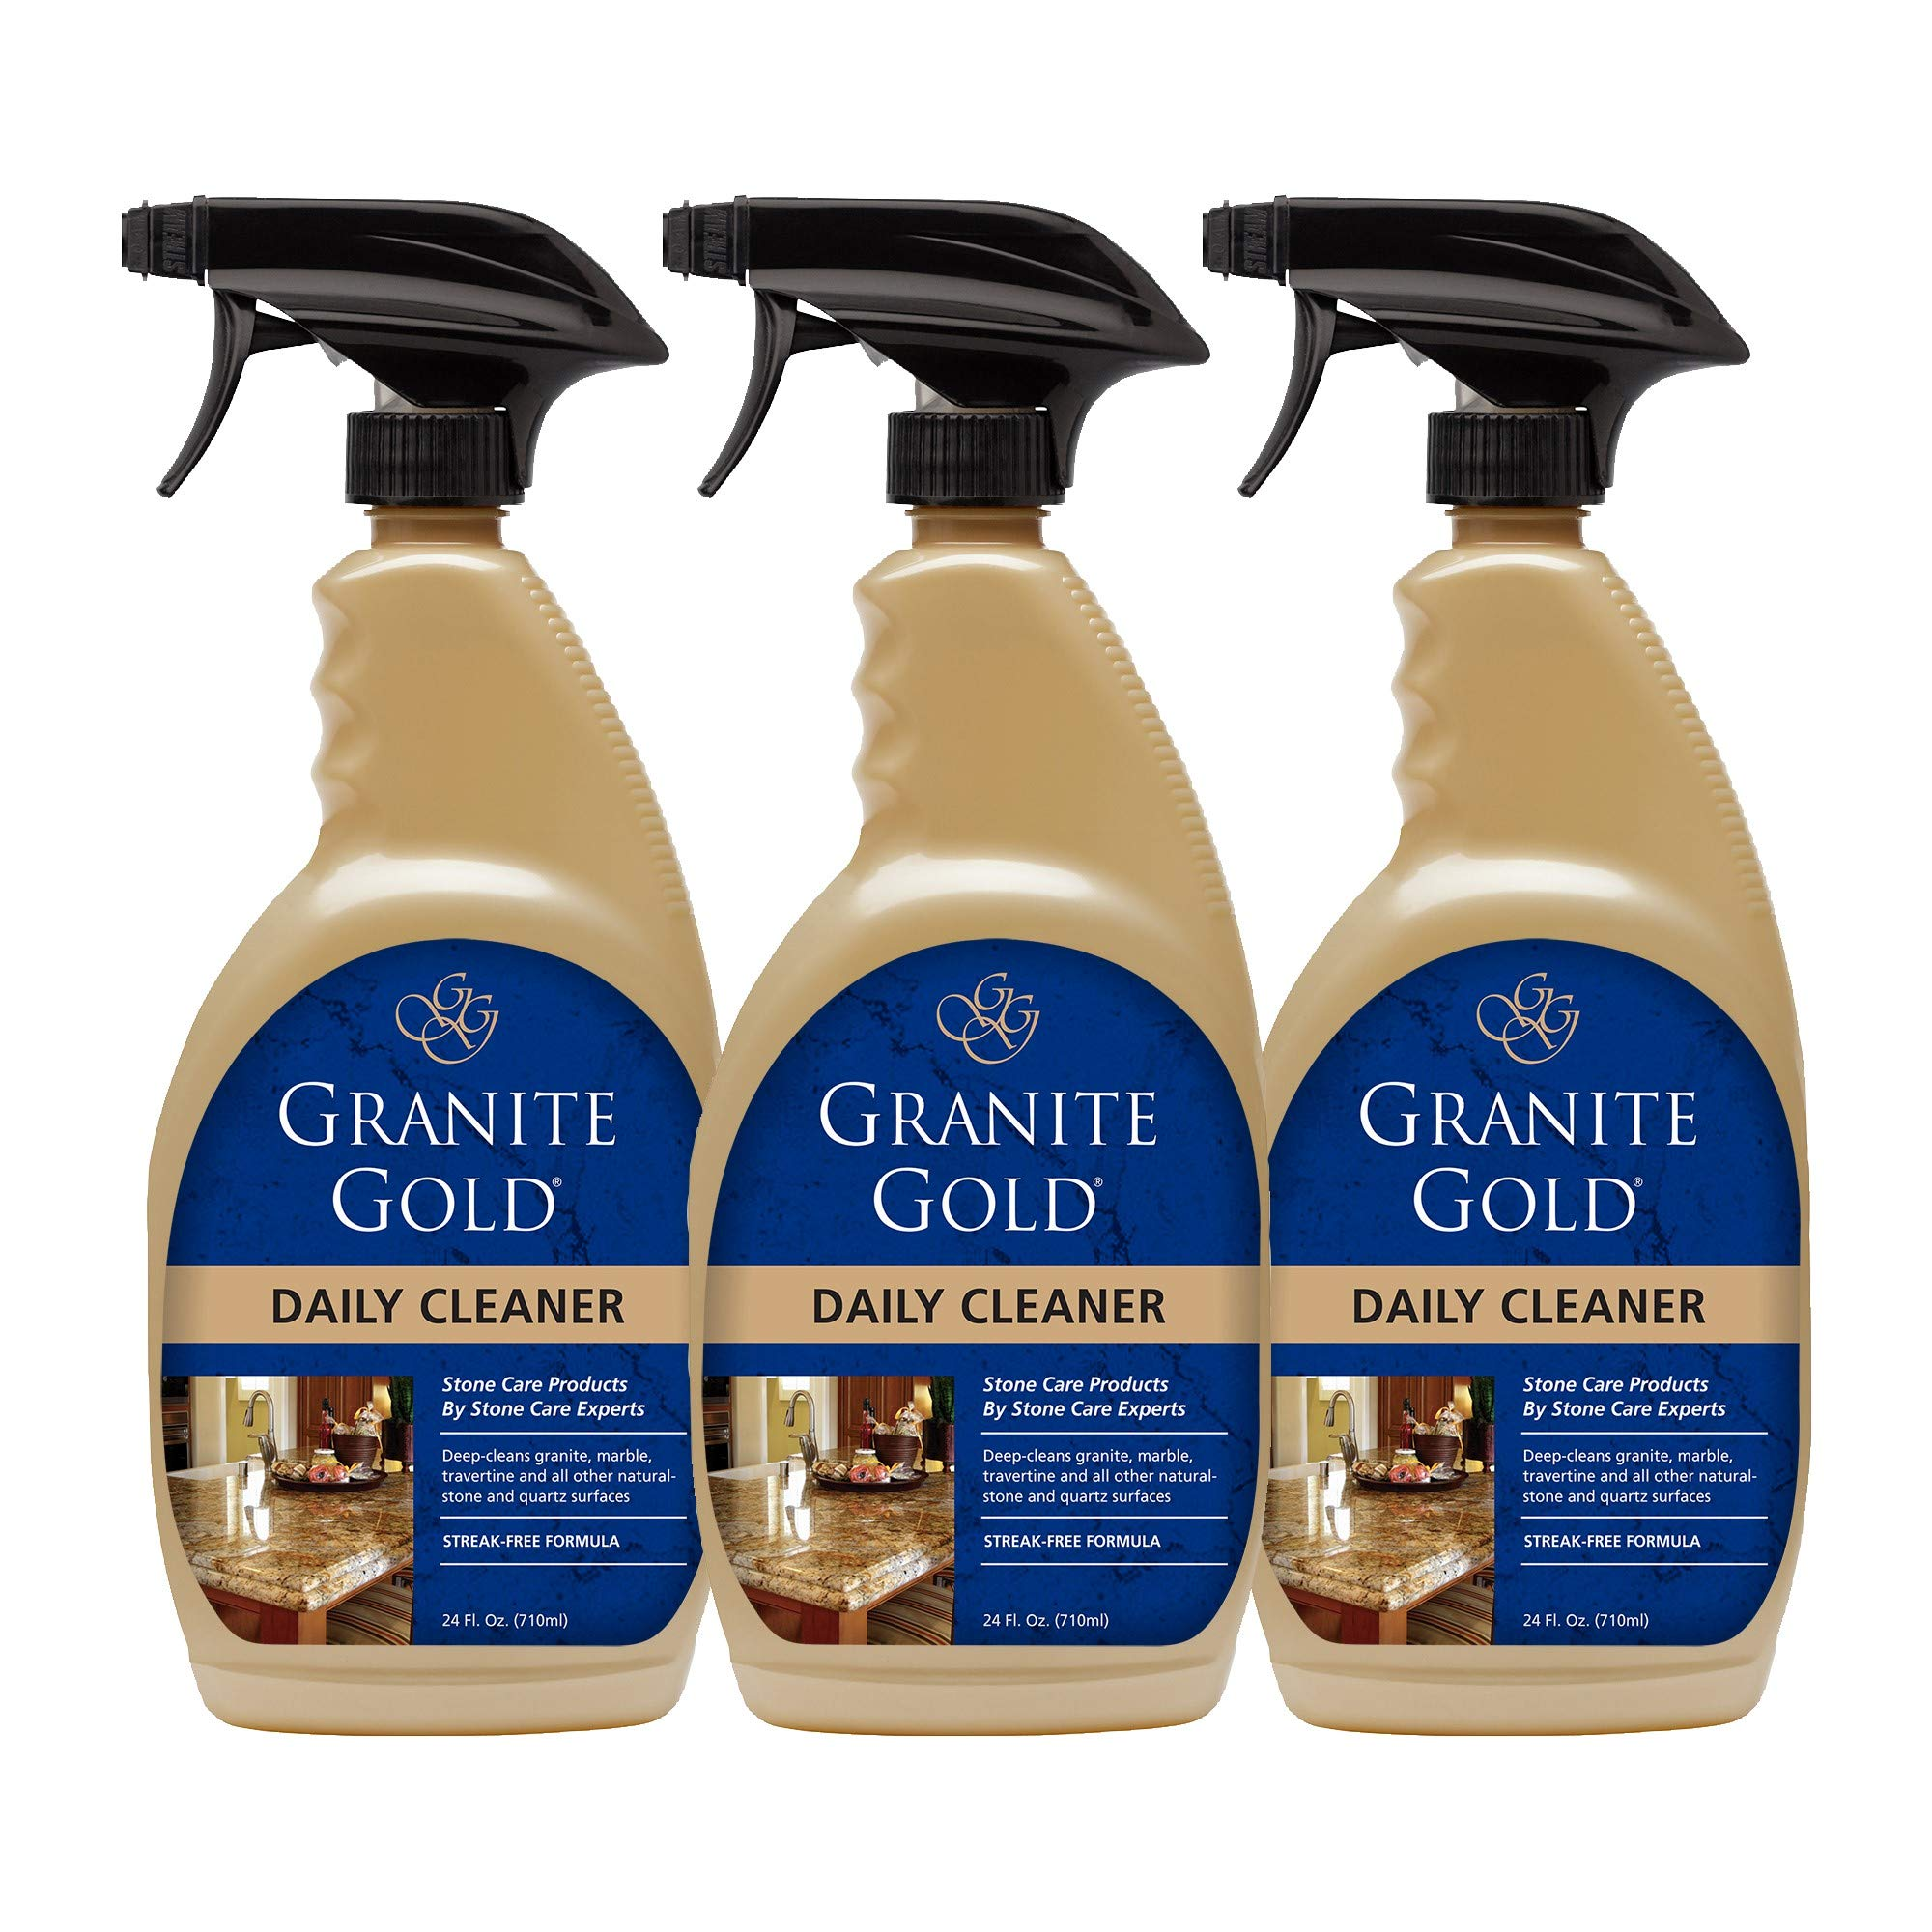 Granite Gold Daily Cleaner Spray Streak Free Cleaning For Granite Marble Travertine Quartz Natural Stone Countertops Floors Made In The Usa 24 Ounces 3 Pack